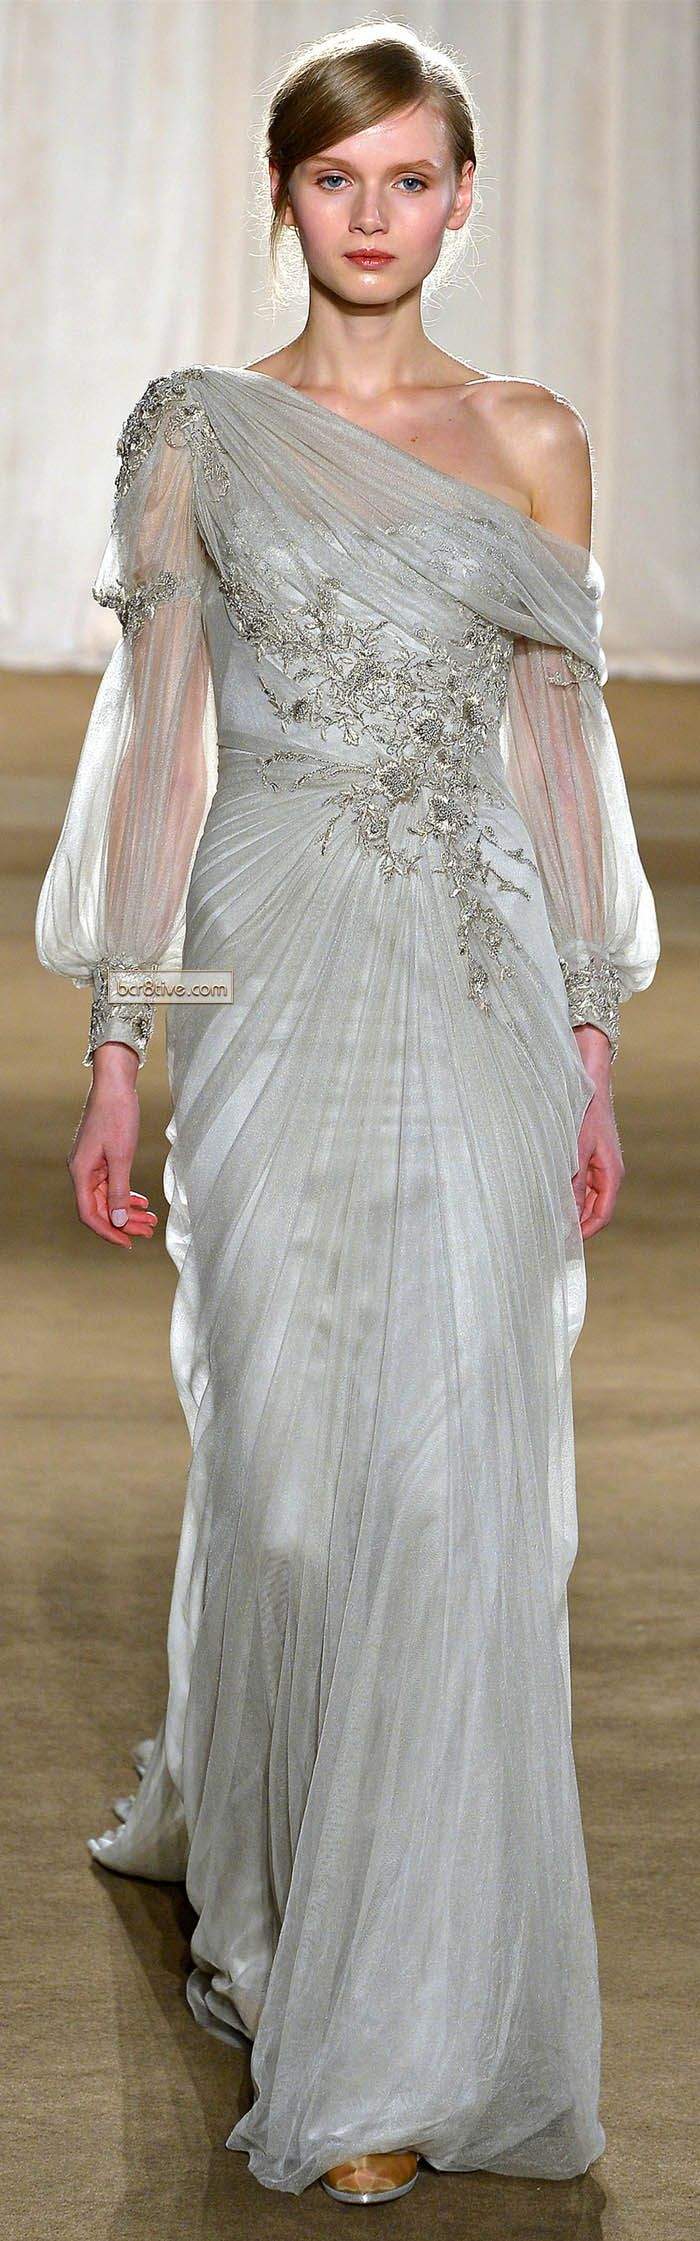 The best images about fashions on pinterest luisa beccaria